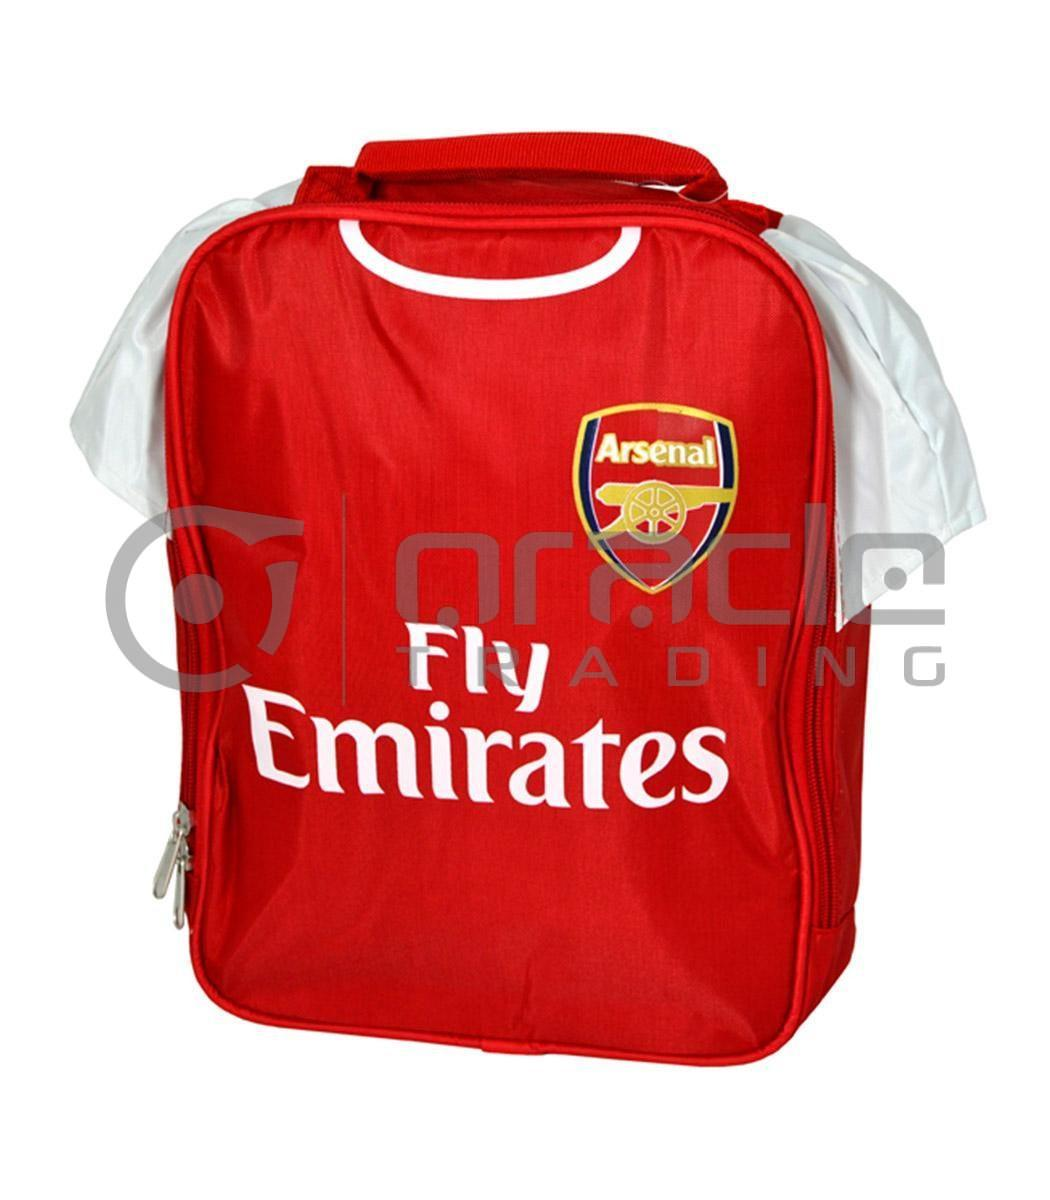 Arsenal Jersey Lunch Bag